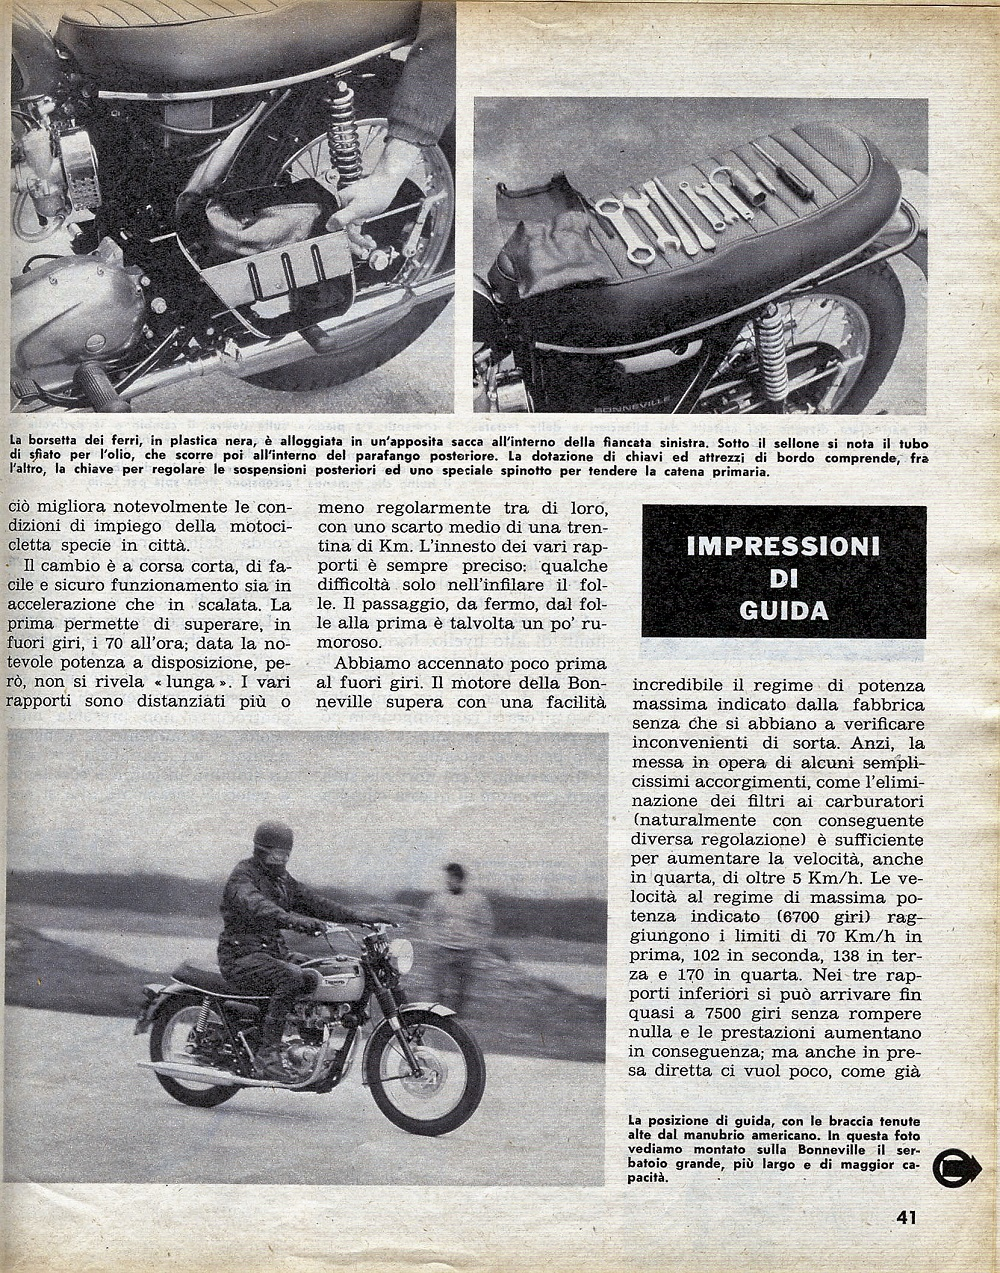 1969 Triumph Bonneville road test. 8.jpg